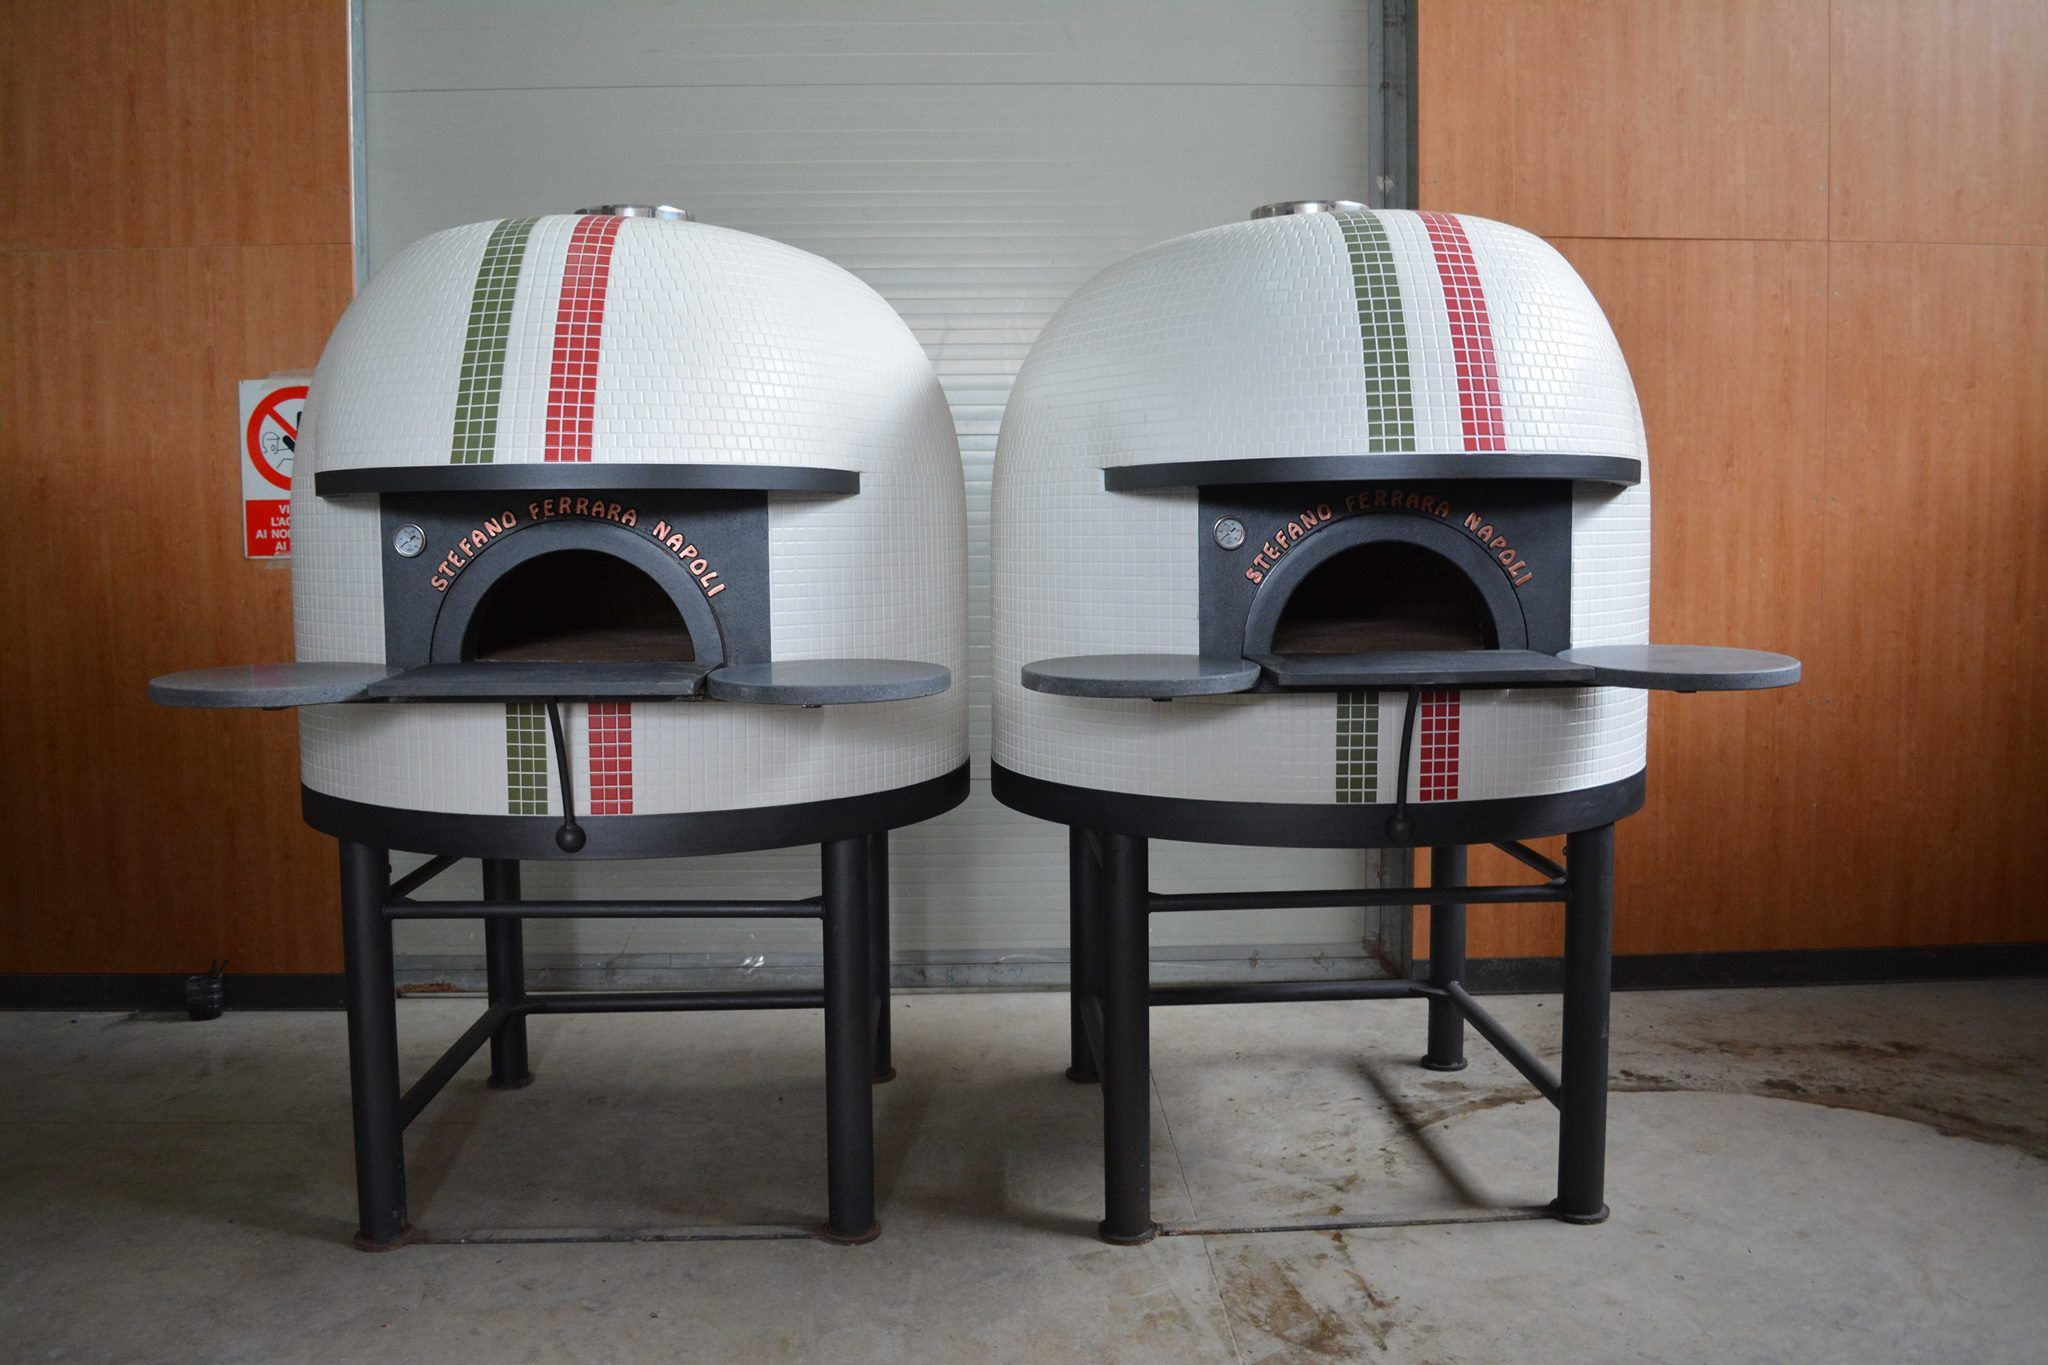 STEFANO FERRARA FORNI WOOD OVEN image by WEISBACH A D ...